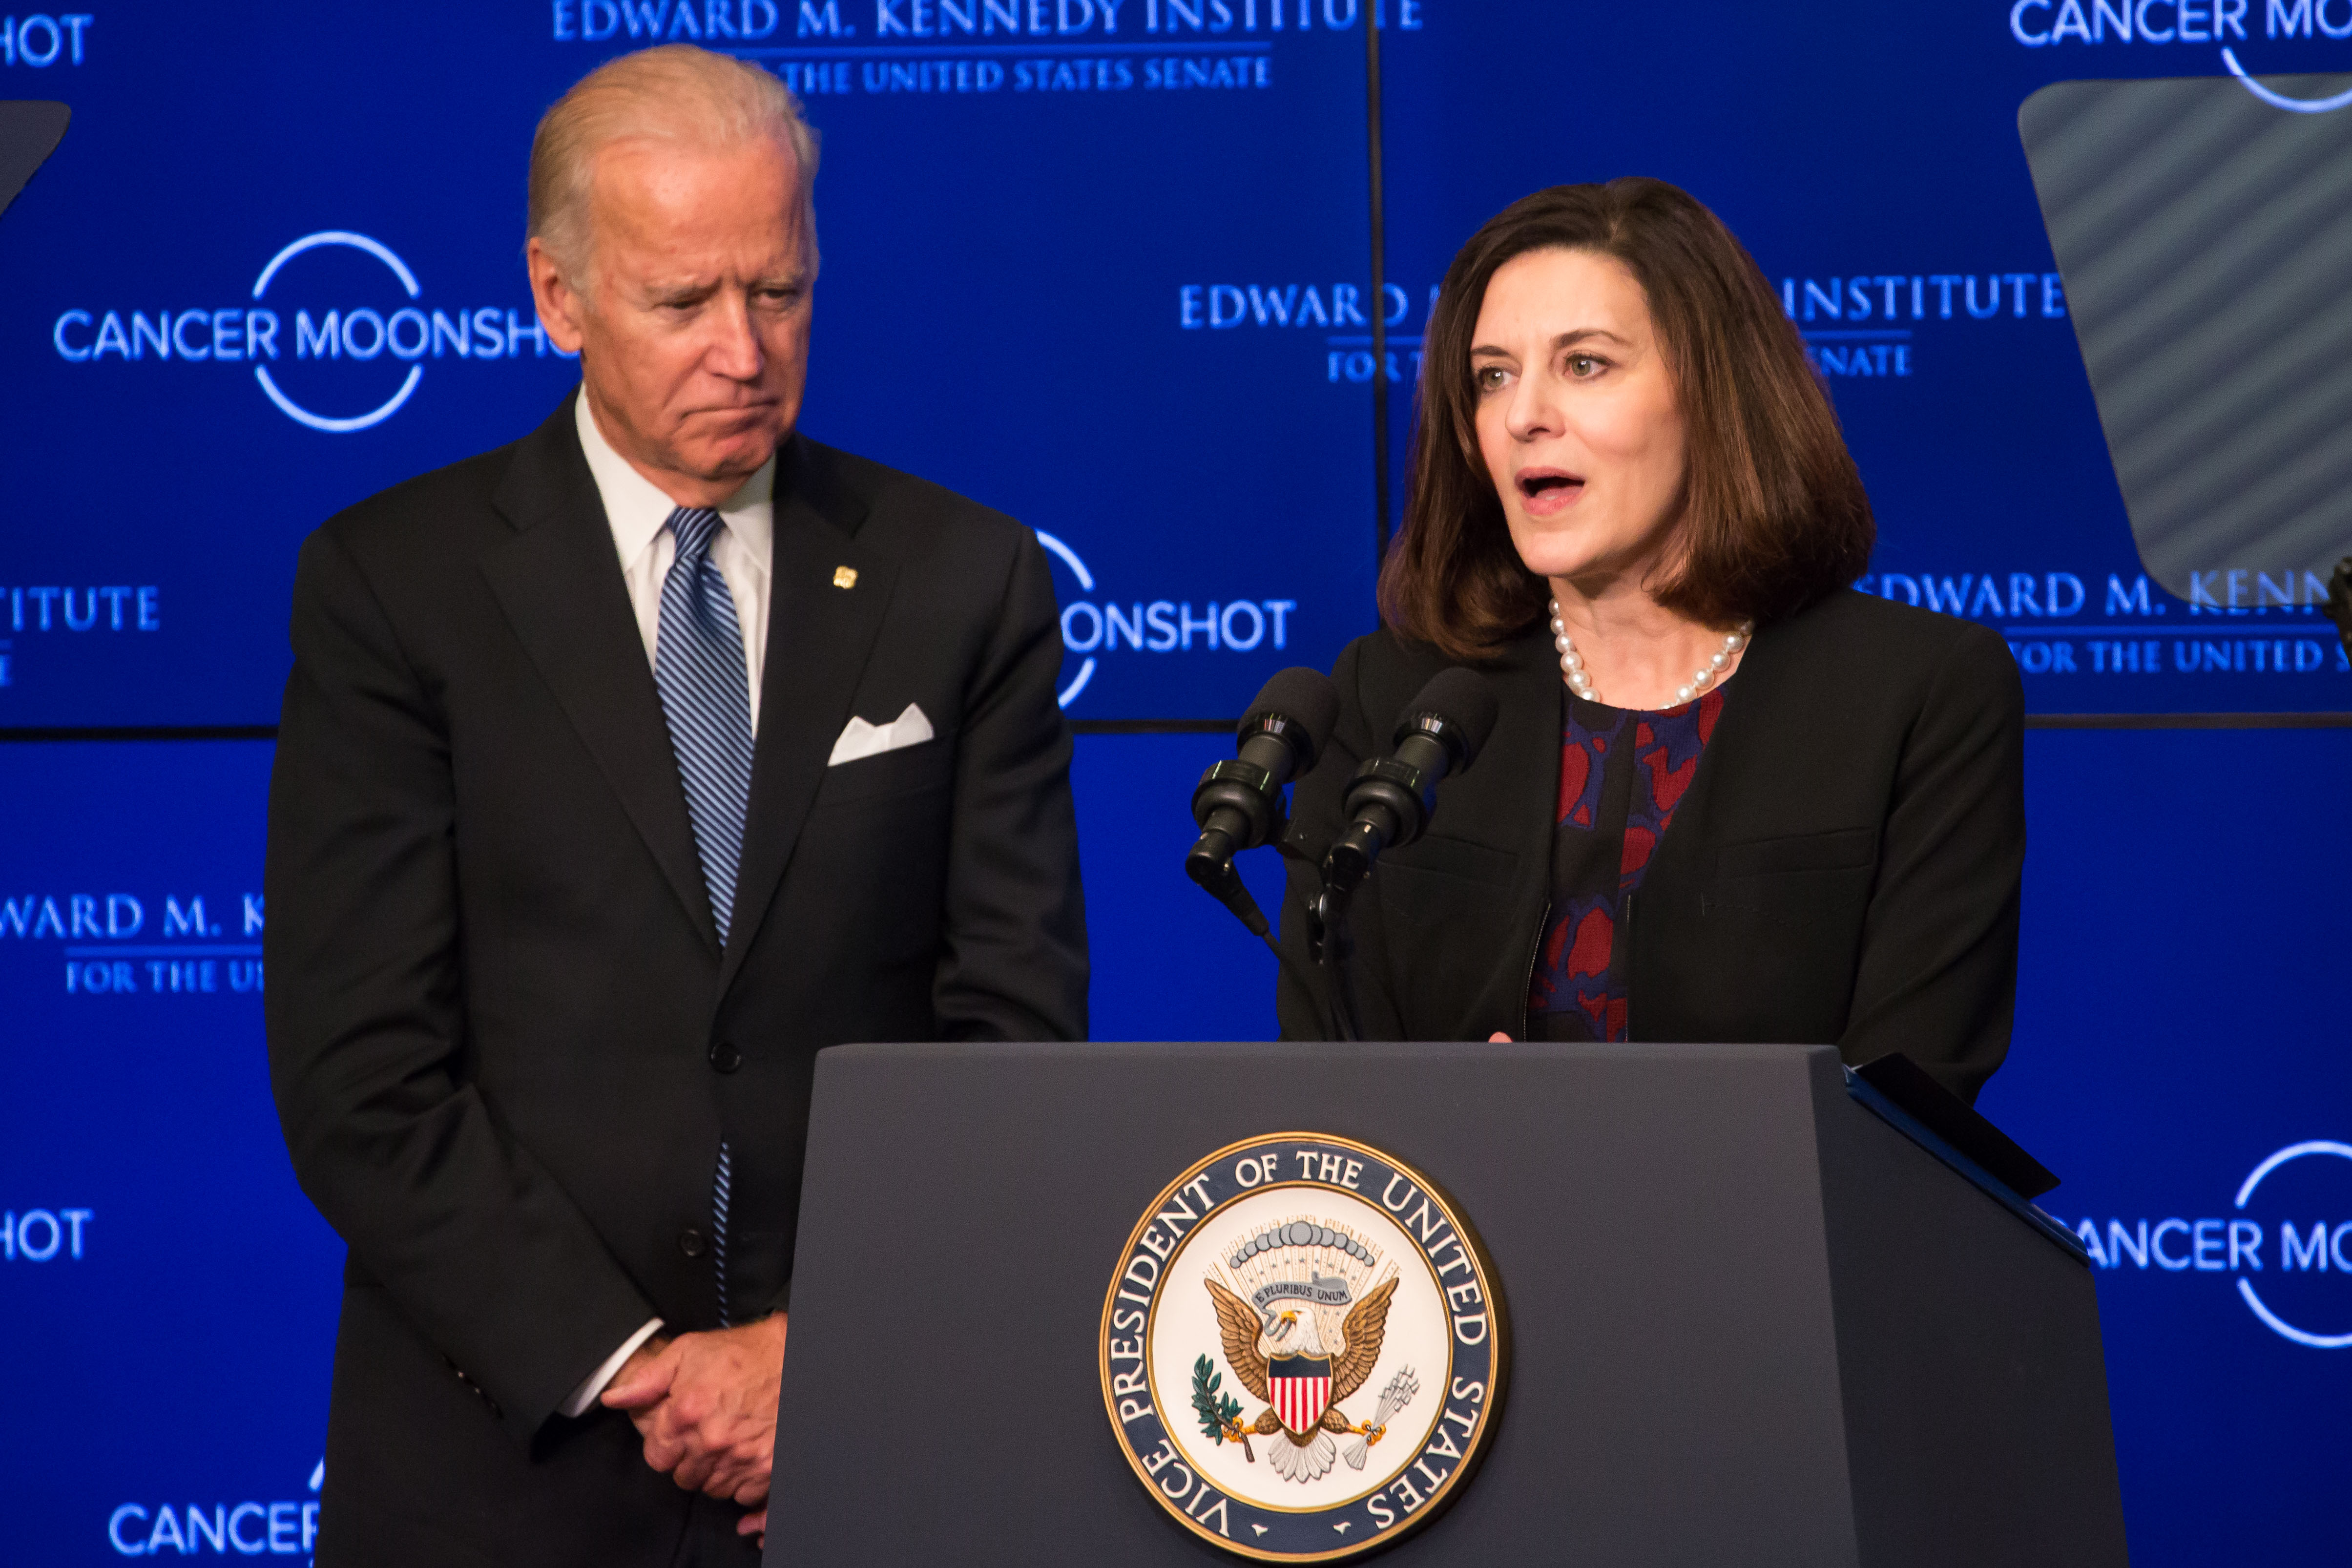 Victoria Reggie Kennedy and Joe Biden